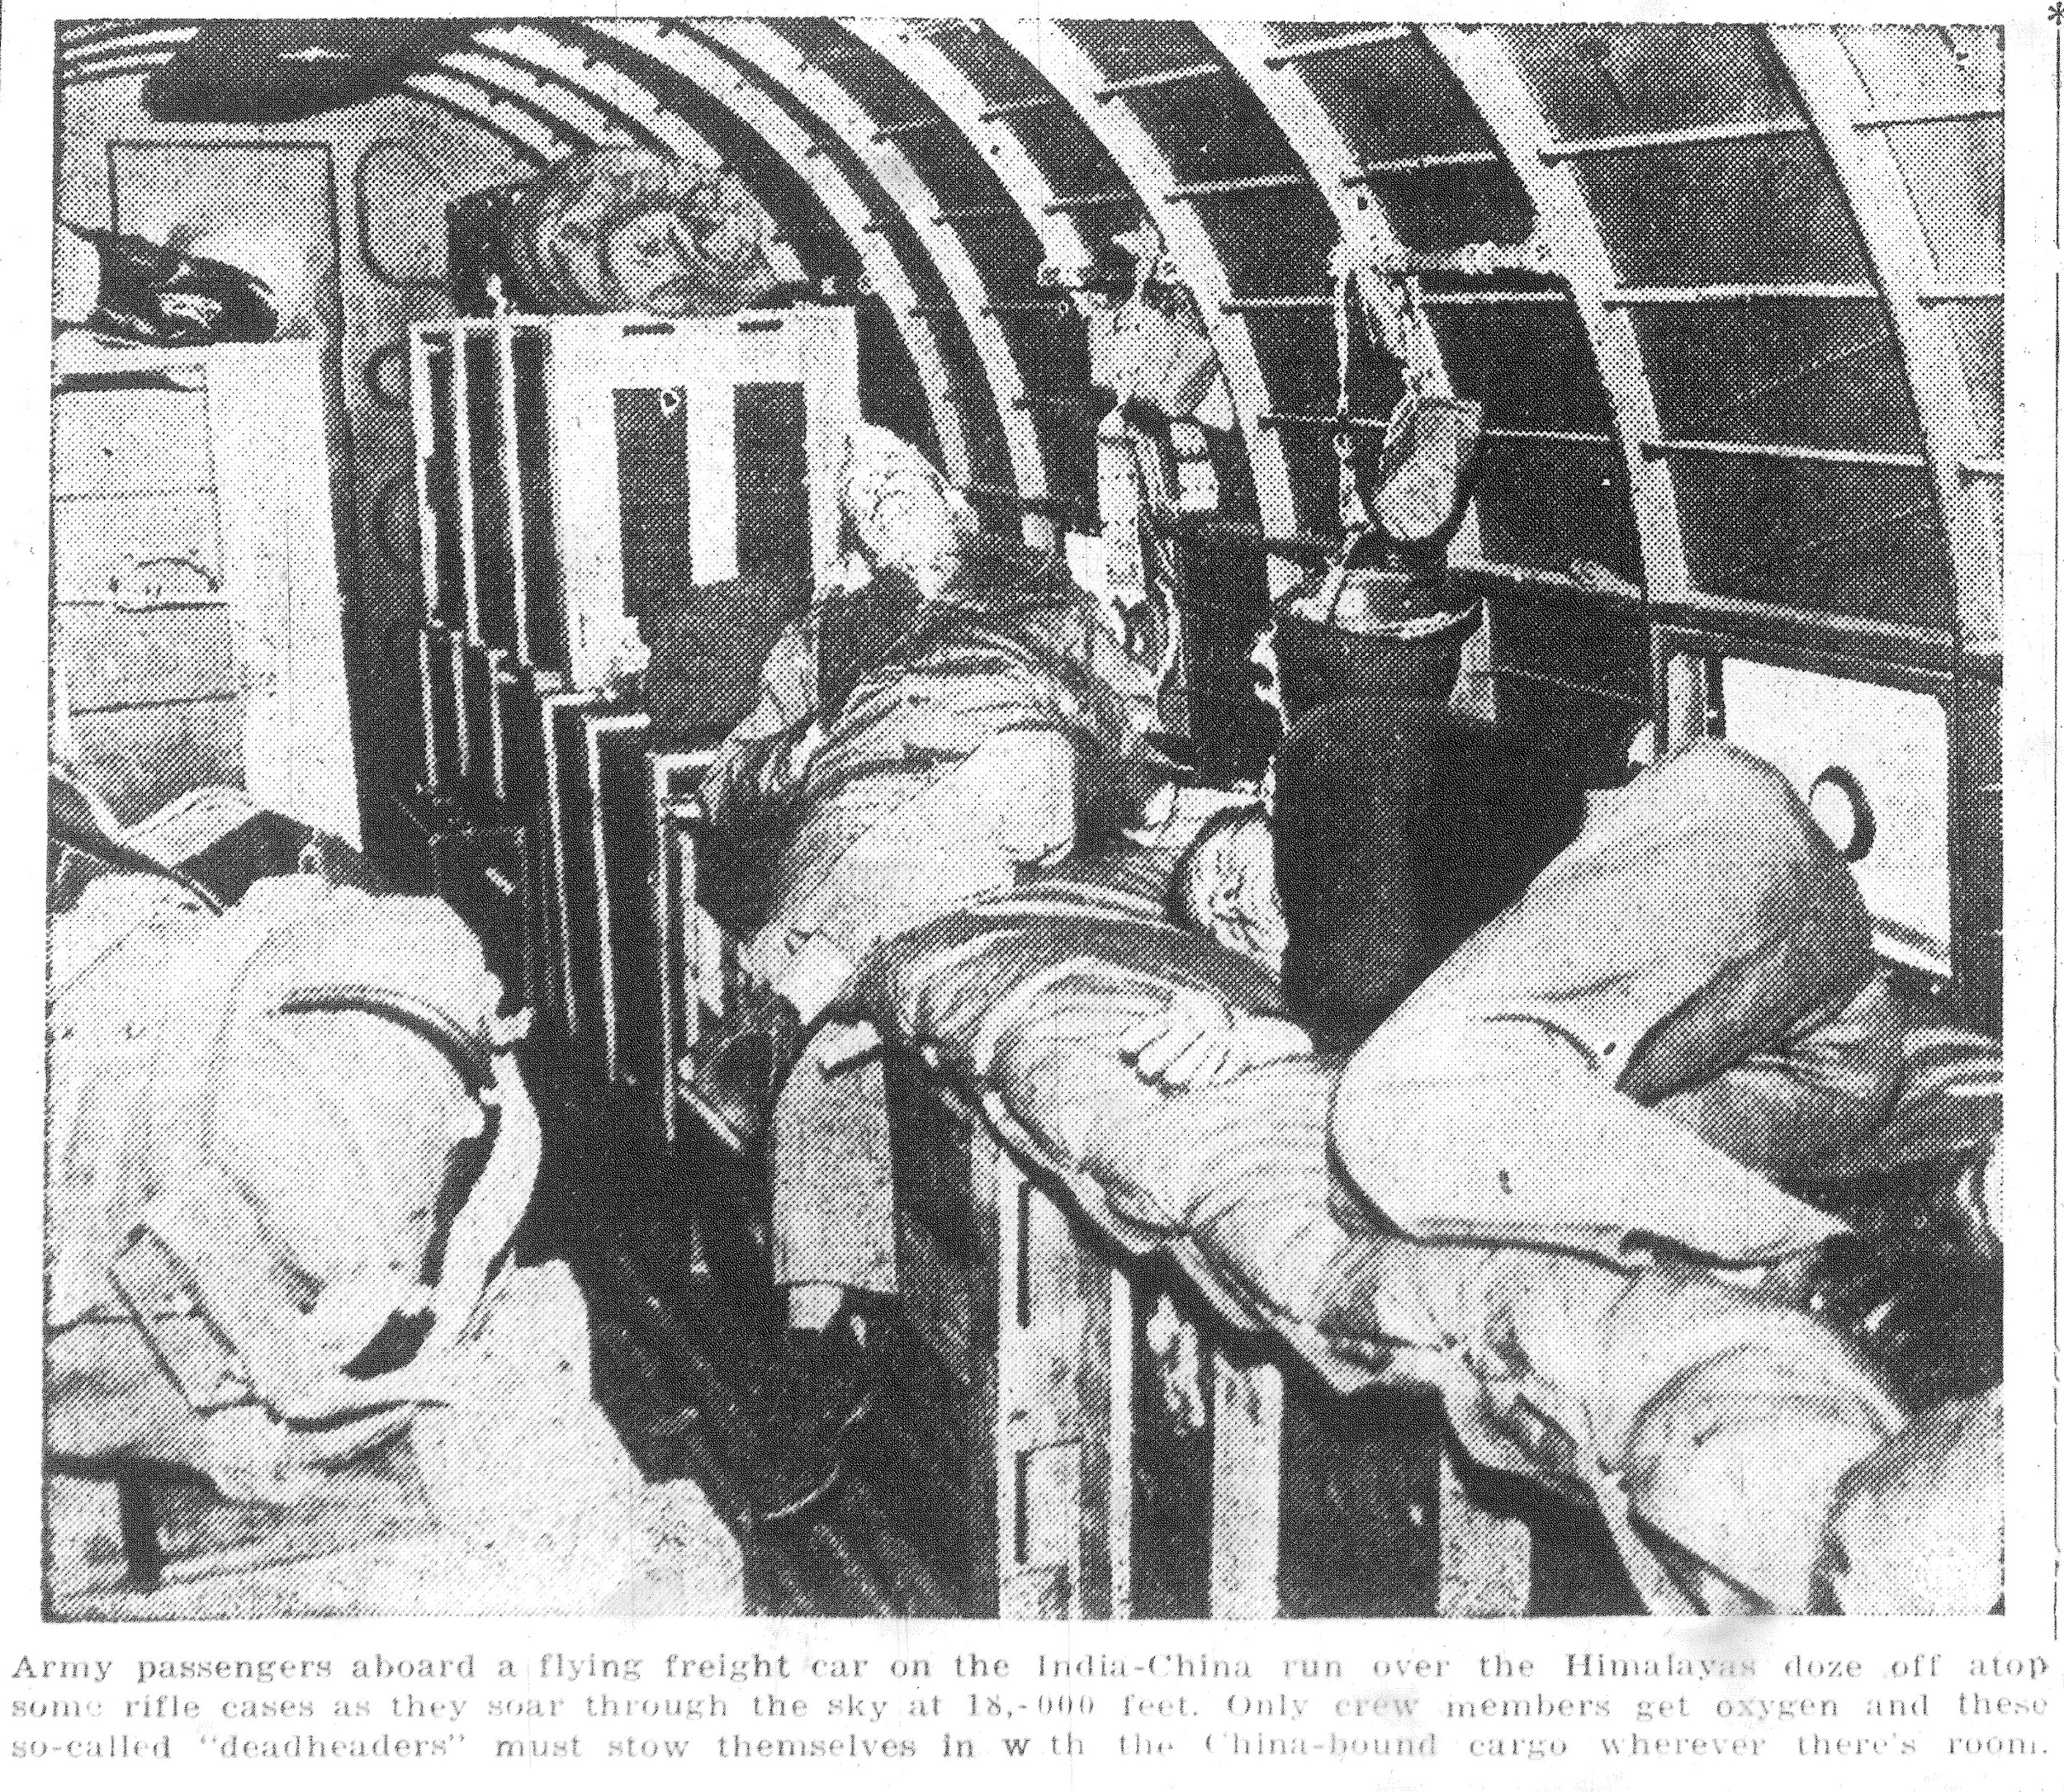 Army passengers aboard a flying freight car on the India-China run over the Himalayas doze off atop some